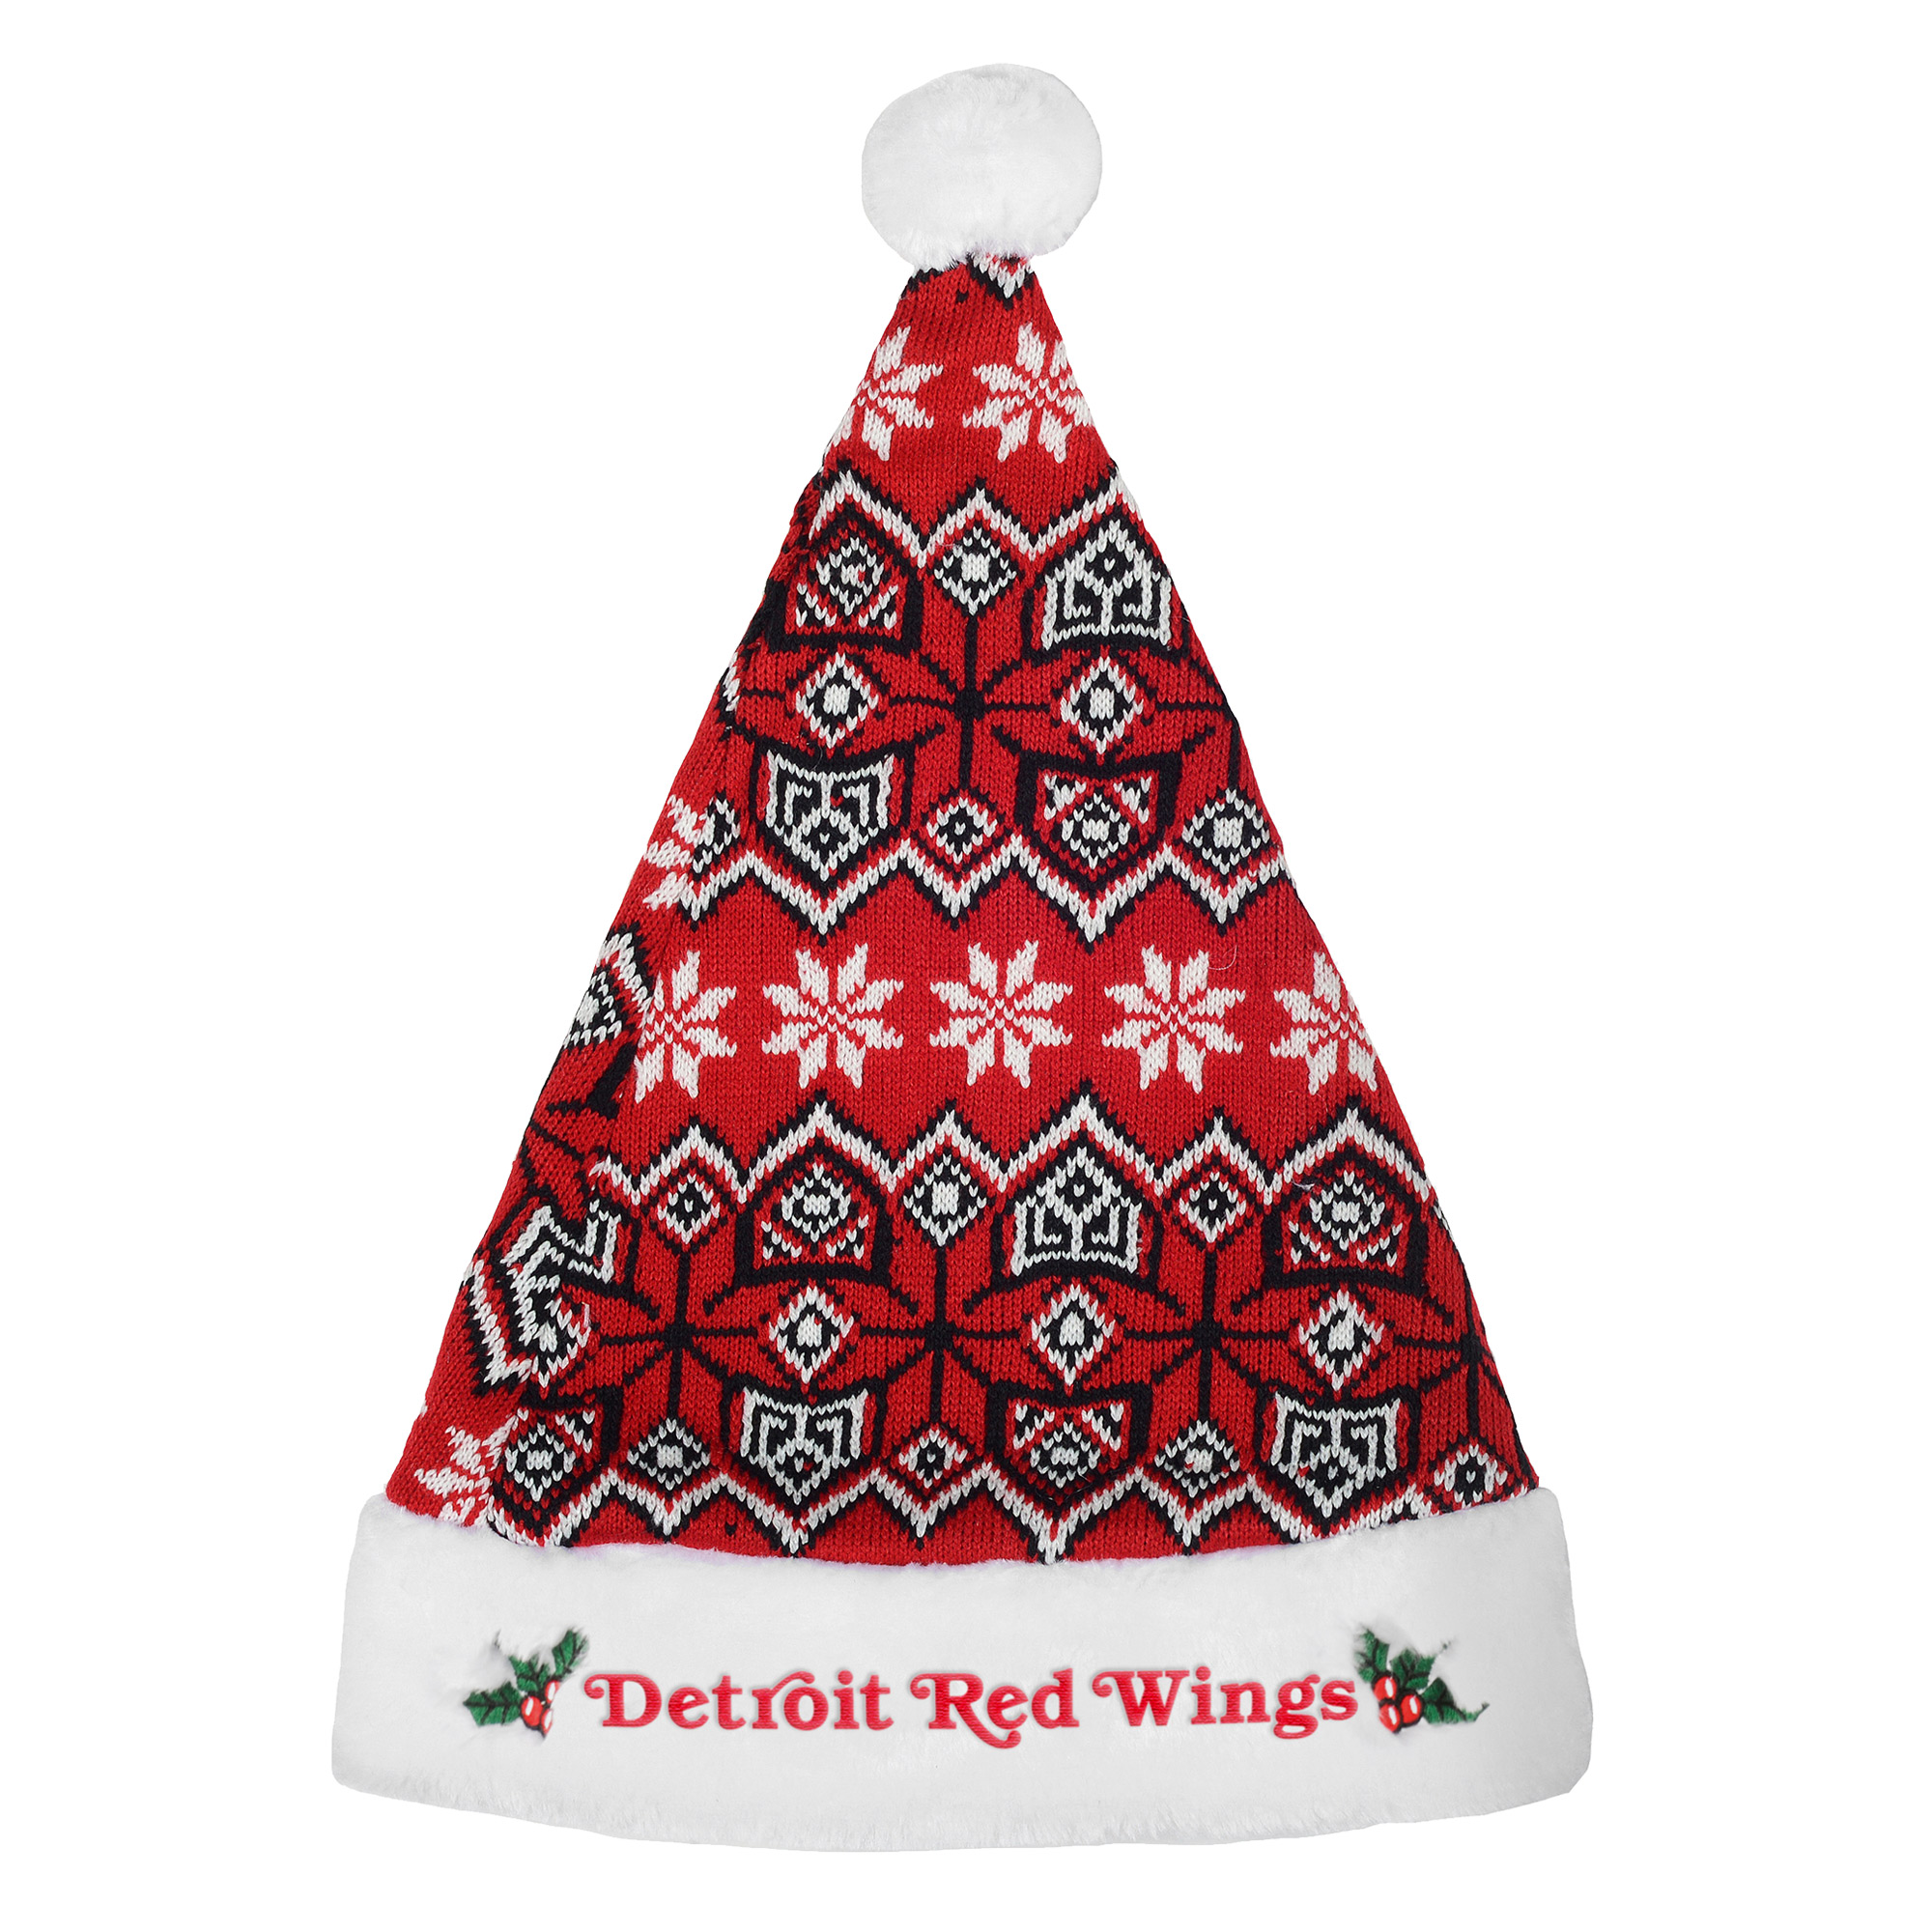 Detroit Red Wings Knit Santa Hat - No Size